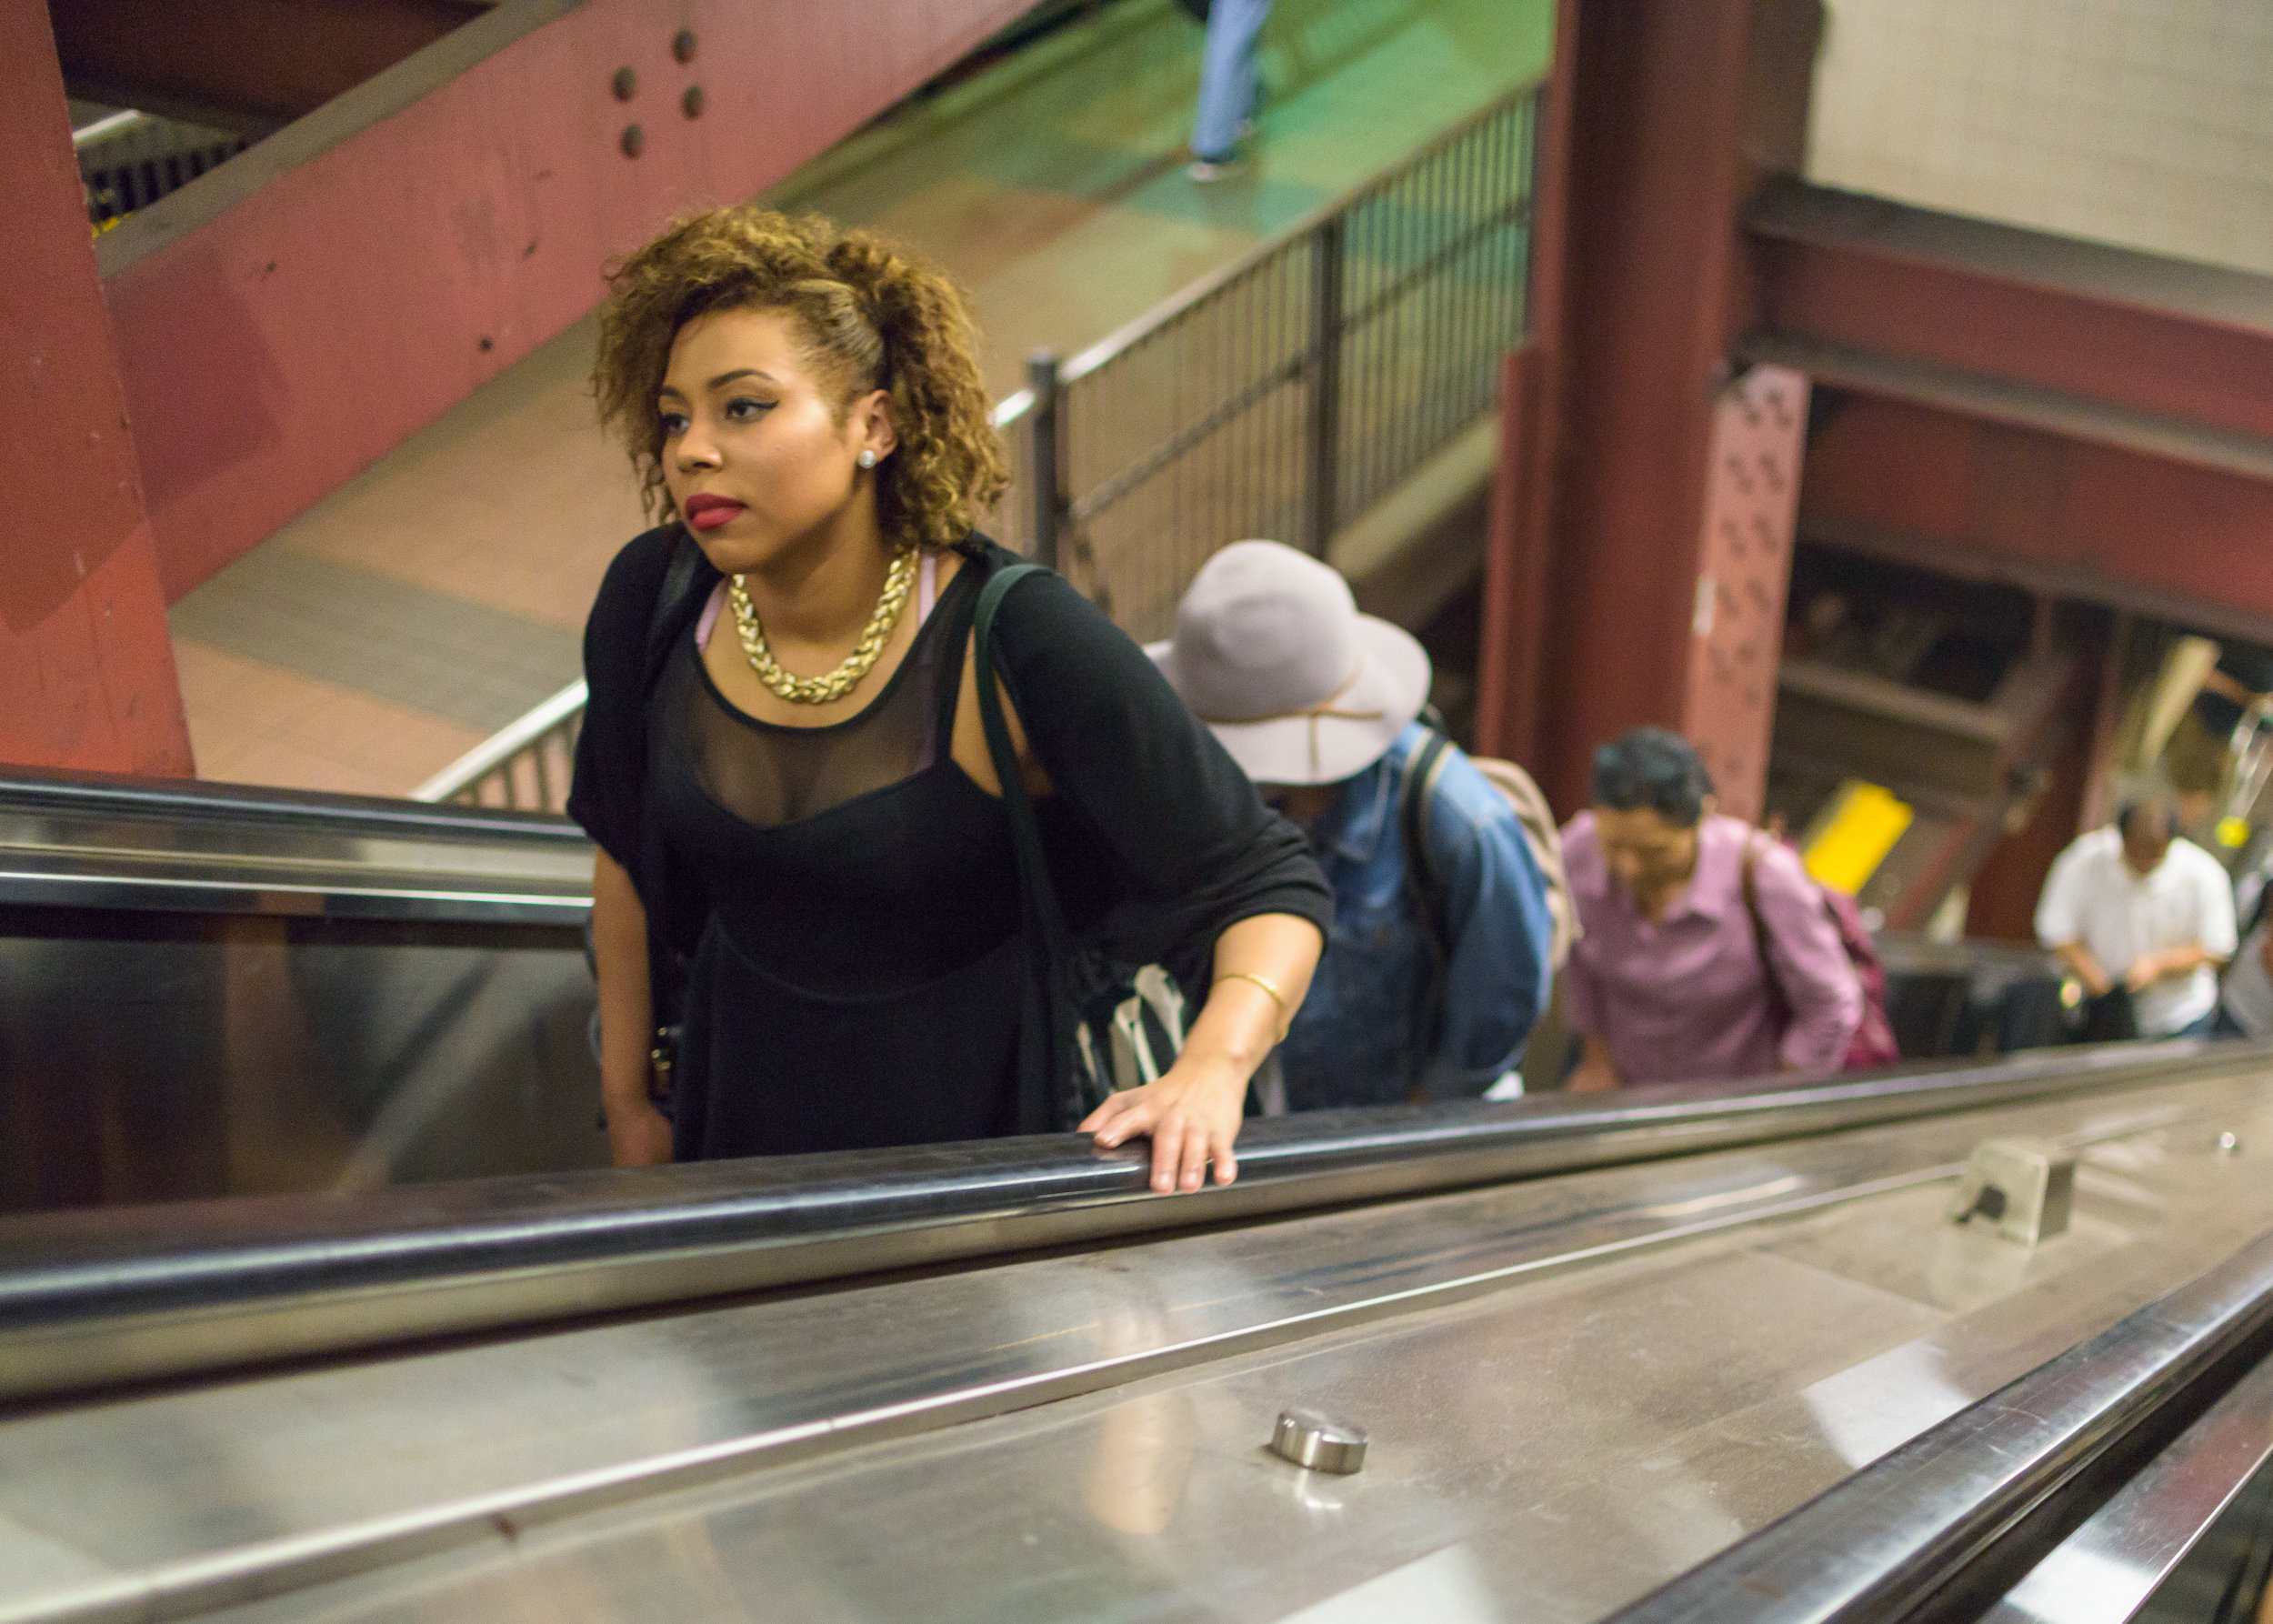 Woman on subway escalator, New York City. Photography by Steven Pisano